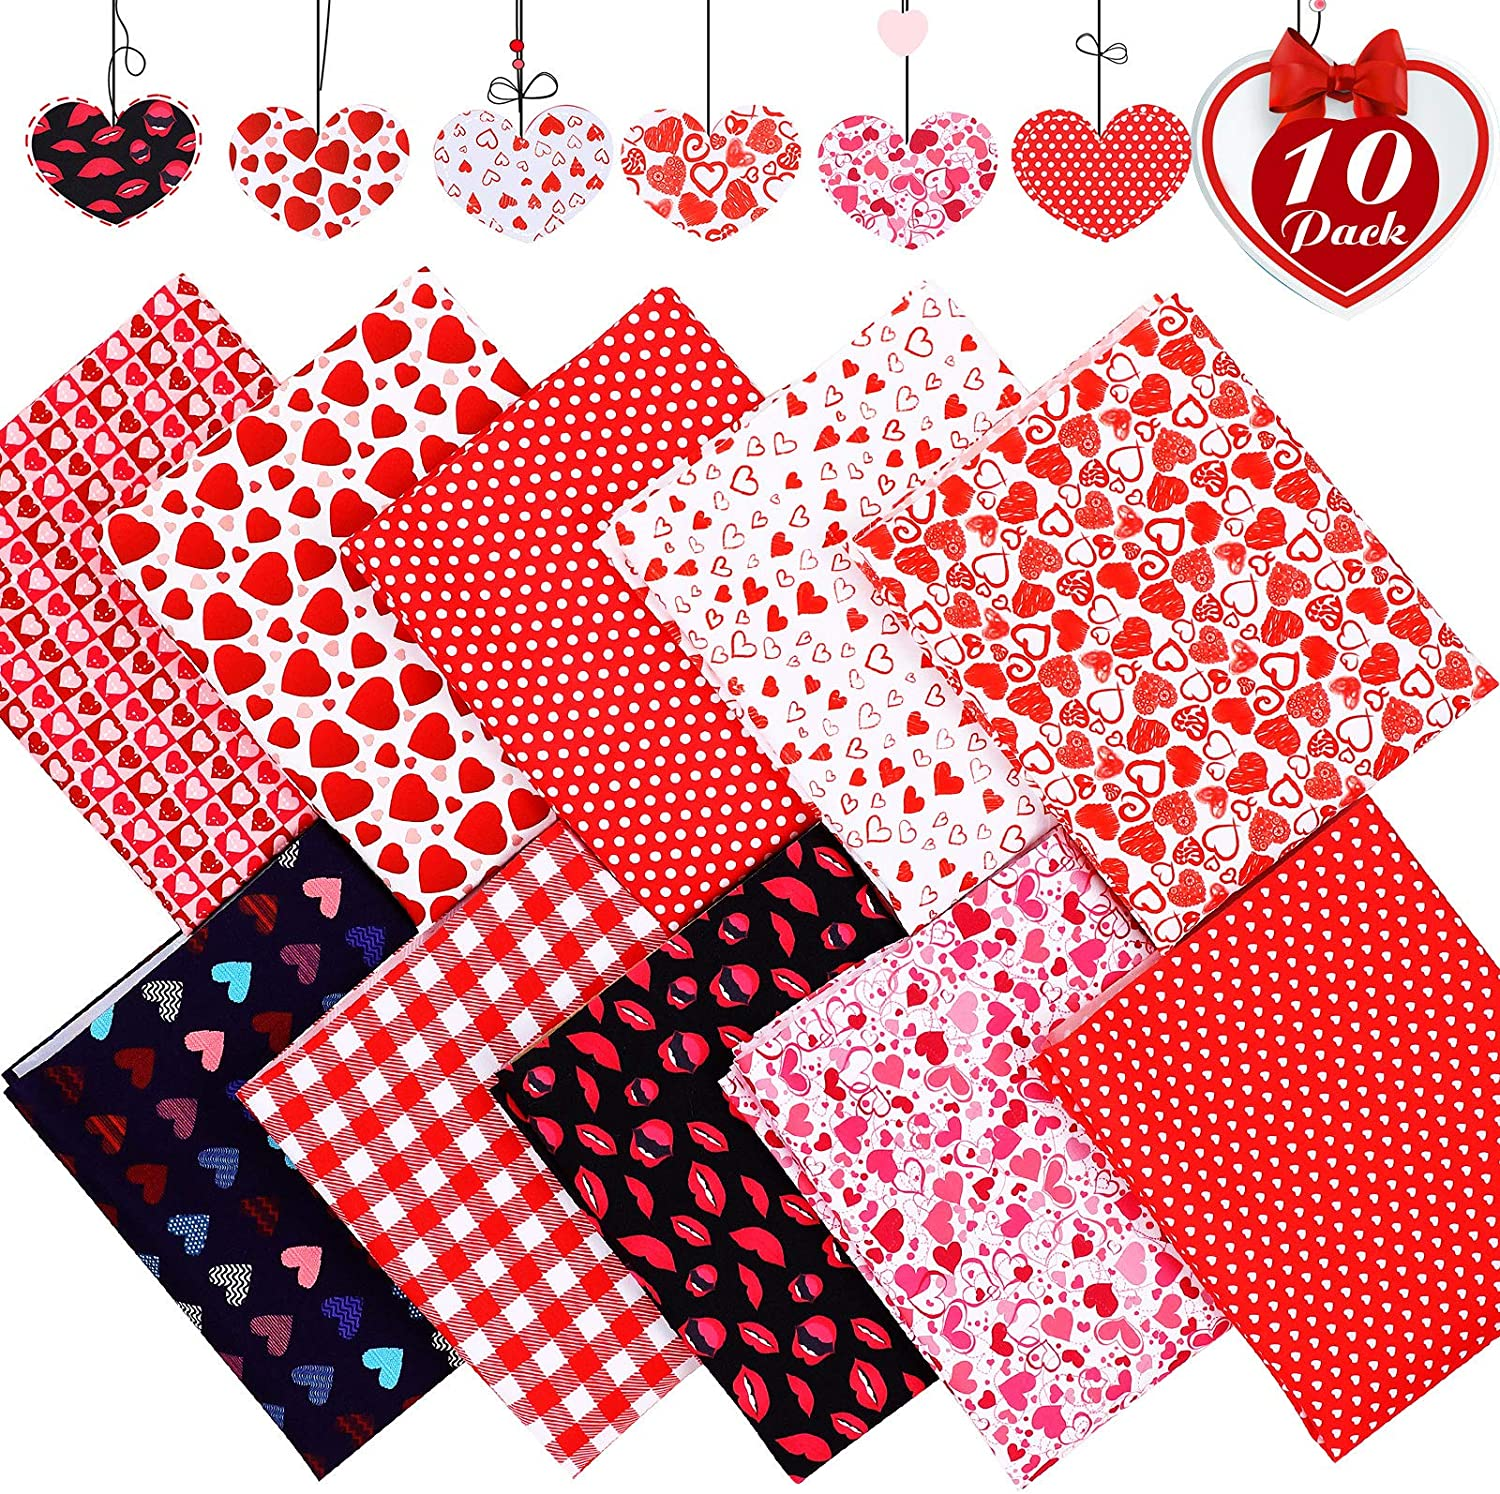 quilting fat quarter mask making Red roses 100/% cotton